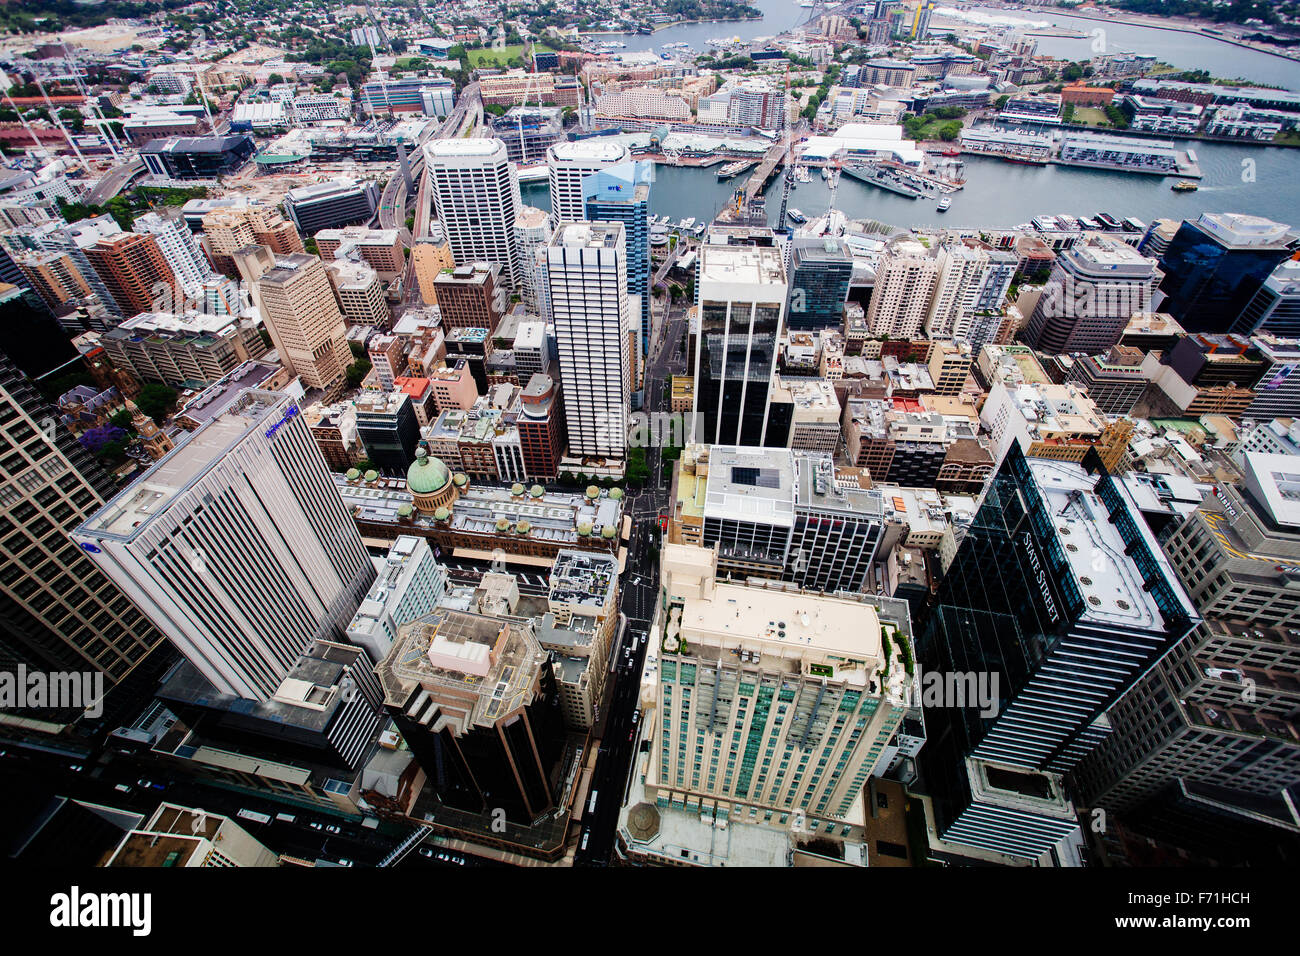 sydney downtown core view from above - Stock Image